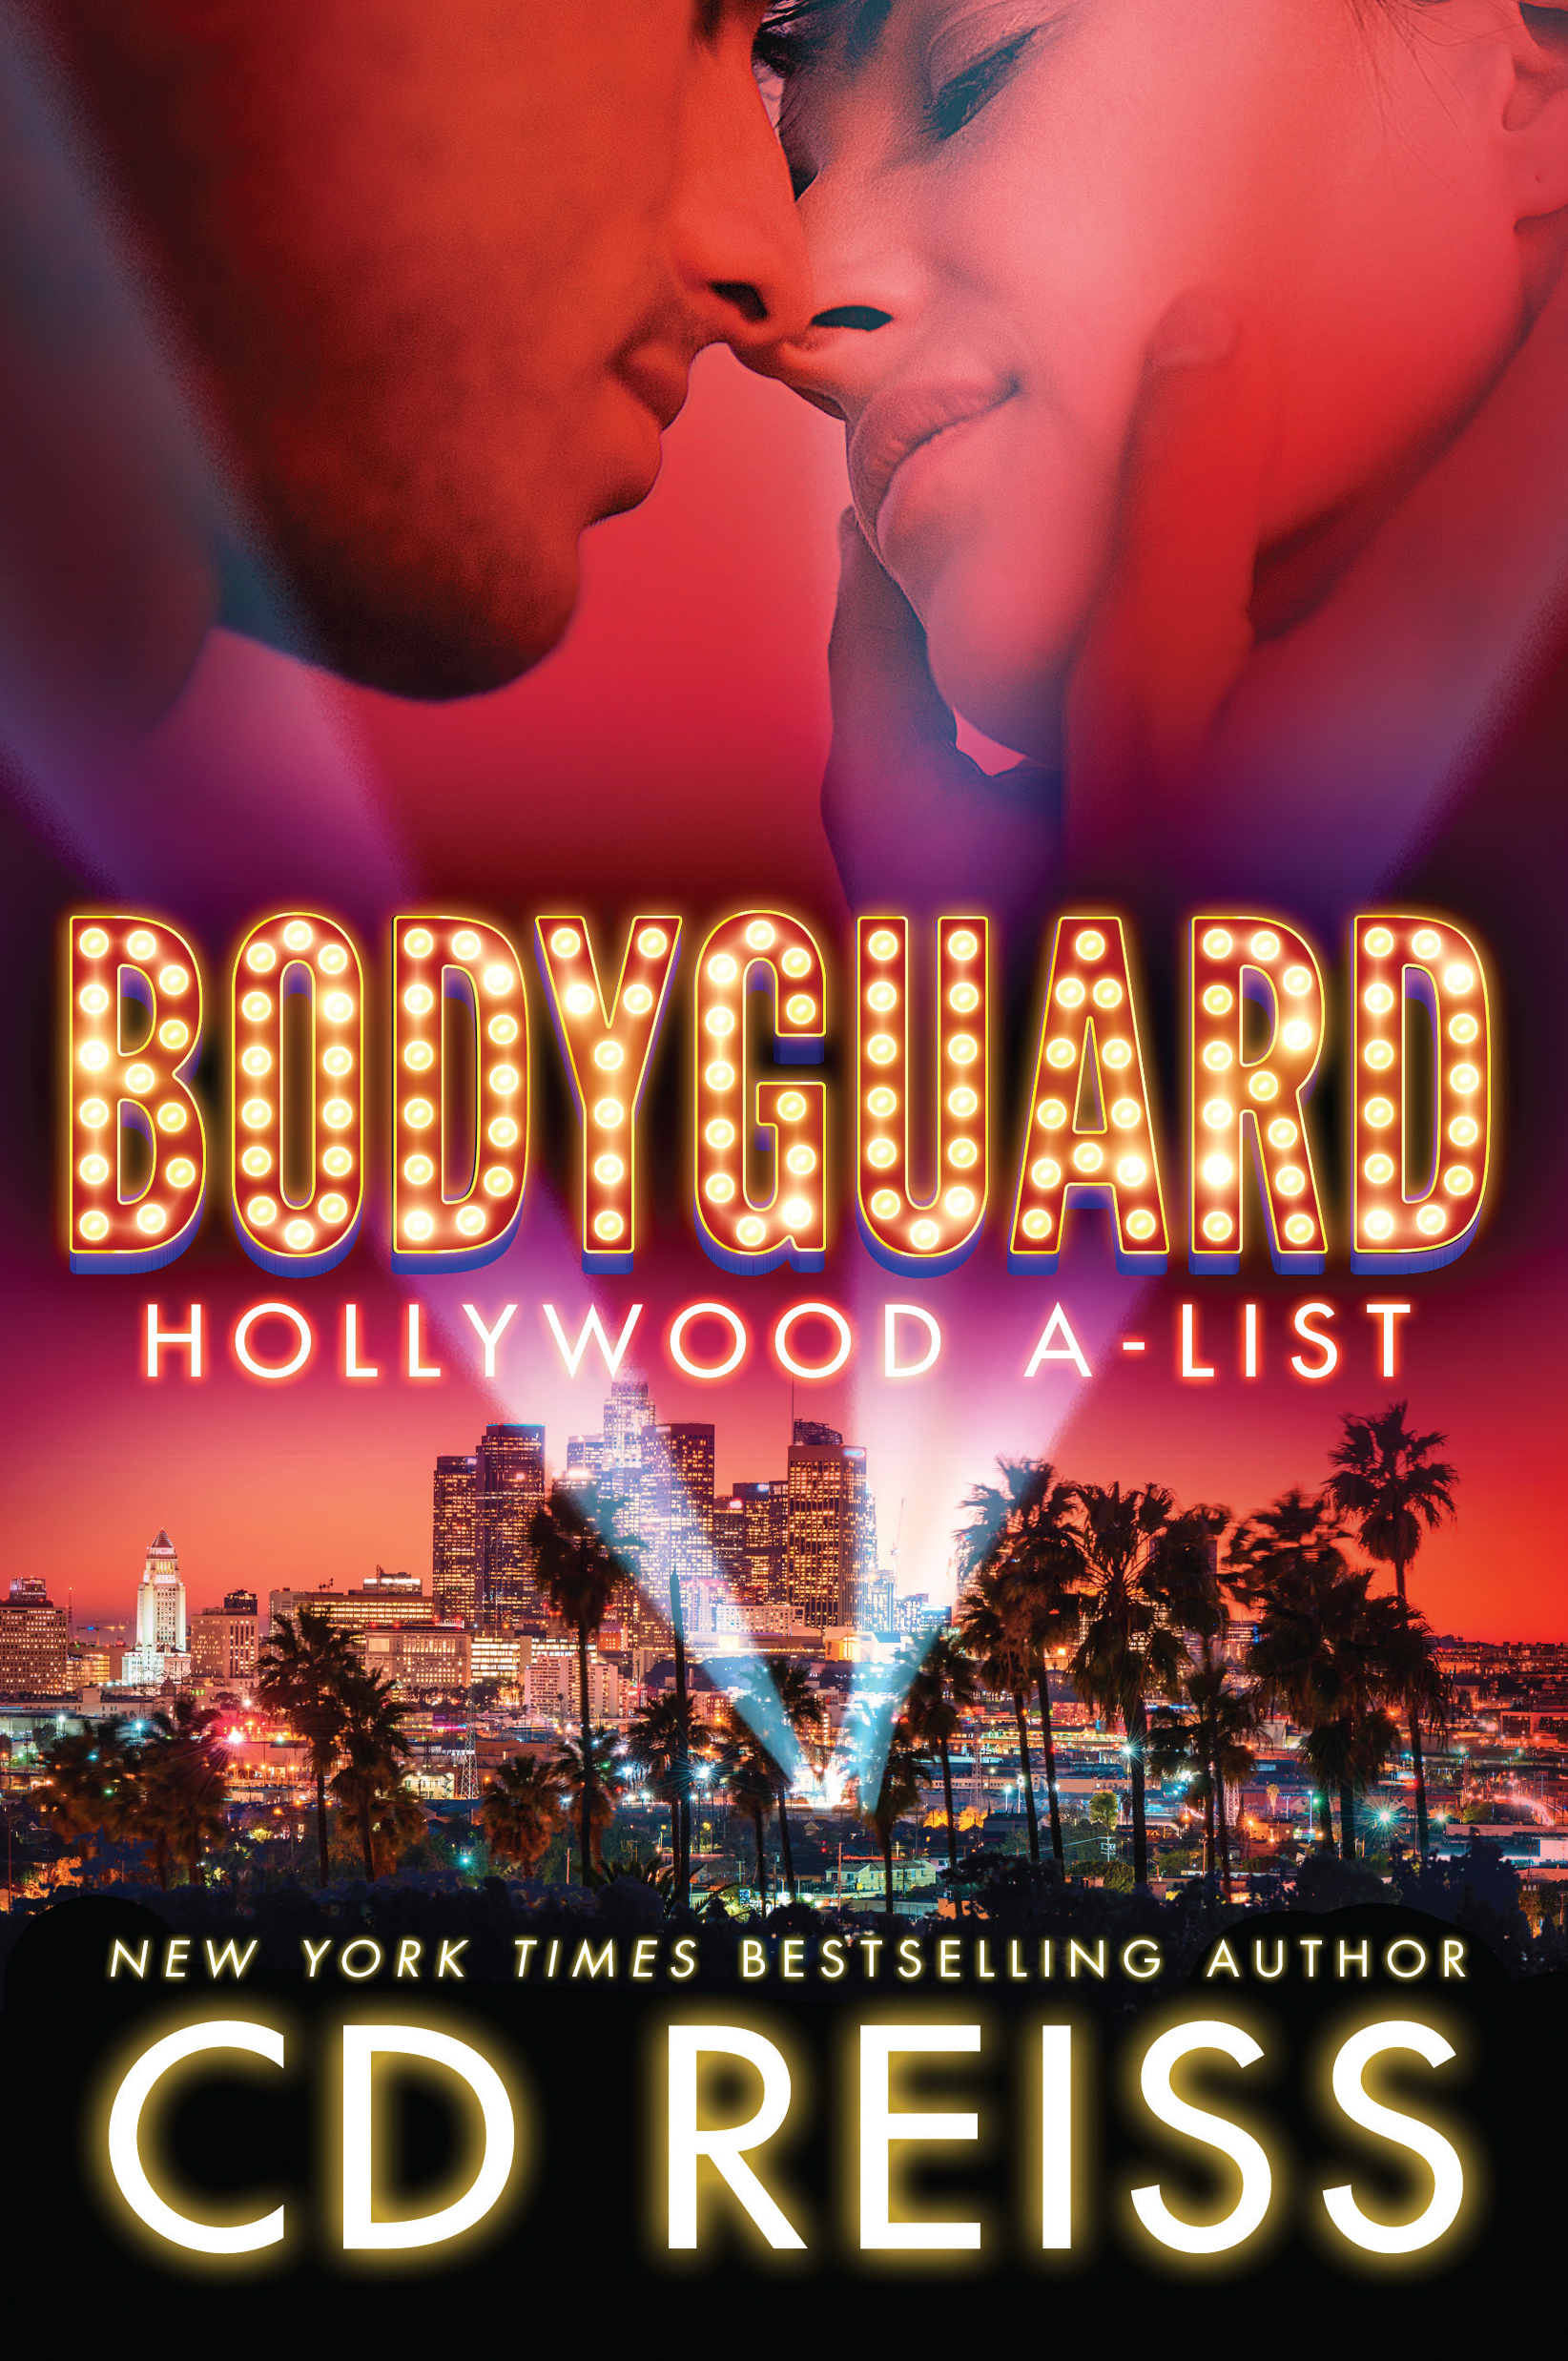 Protecting a celebrity in Hollywood isn't easy, but protecting Emily could break his heart.    As a world-class dancer at the height of her career, Emily enjoys all the perks of fame—the parties, the glamour, the tours—but they've also attracted the attention of a dangerous ex-boyfriend hell-bent on getting her back.    Enter Carter Kincaid, a bodyguard so crushingly sexy he takes her breath away.    Carter's the best in the business, and Emily is—professionally speaking—off-limits. But when it comes to stirring his desires, she's making all the right moves. What's happening between them is so hot it could get both of them burned. As Emily's past gets closer, Carter is willing to break every rule of the job to save her. But letting Emily into his life also means letting her in on the secrets of his own past. For these two, falling in love could be the greatest risk of all.Add to  GoodReads       Read today!   Amazon US ~   Amazon UK  ~   Amazon CA  ~   Amazon AU